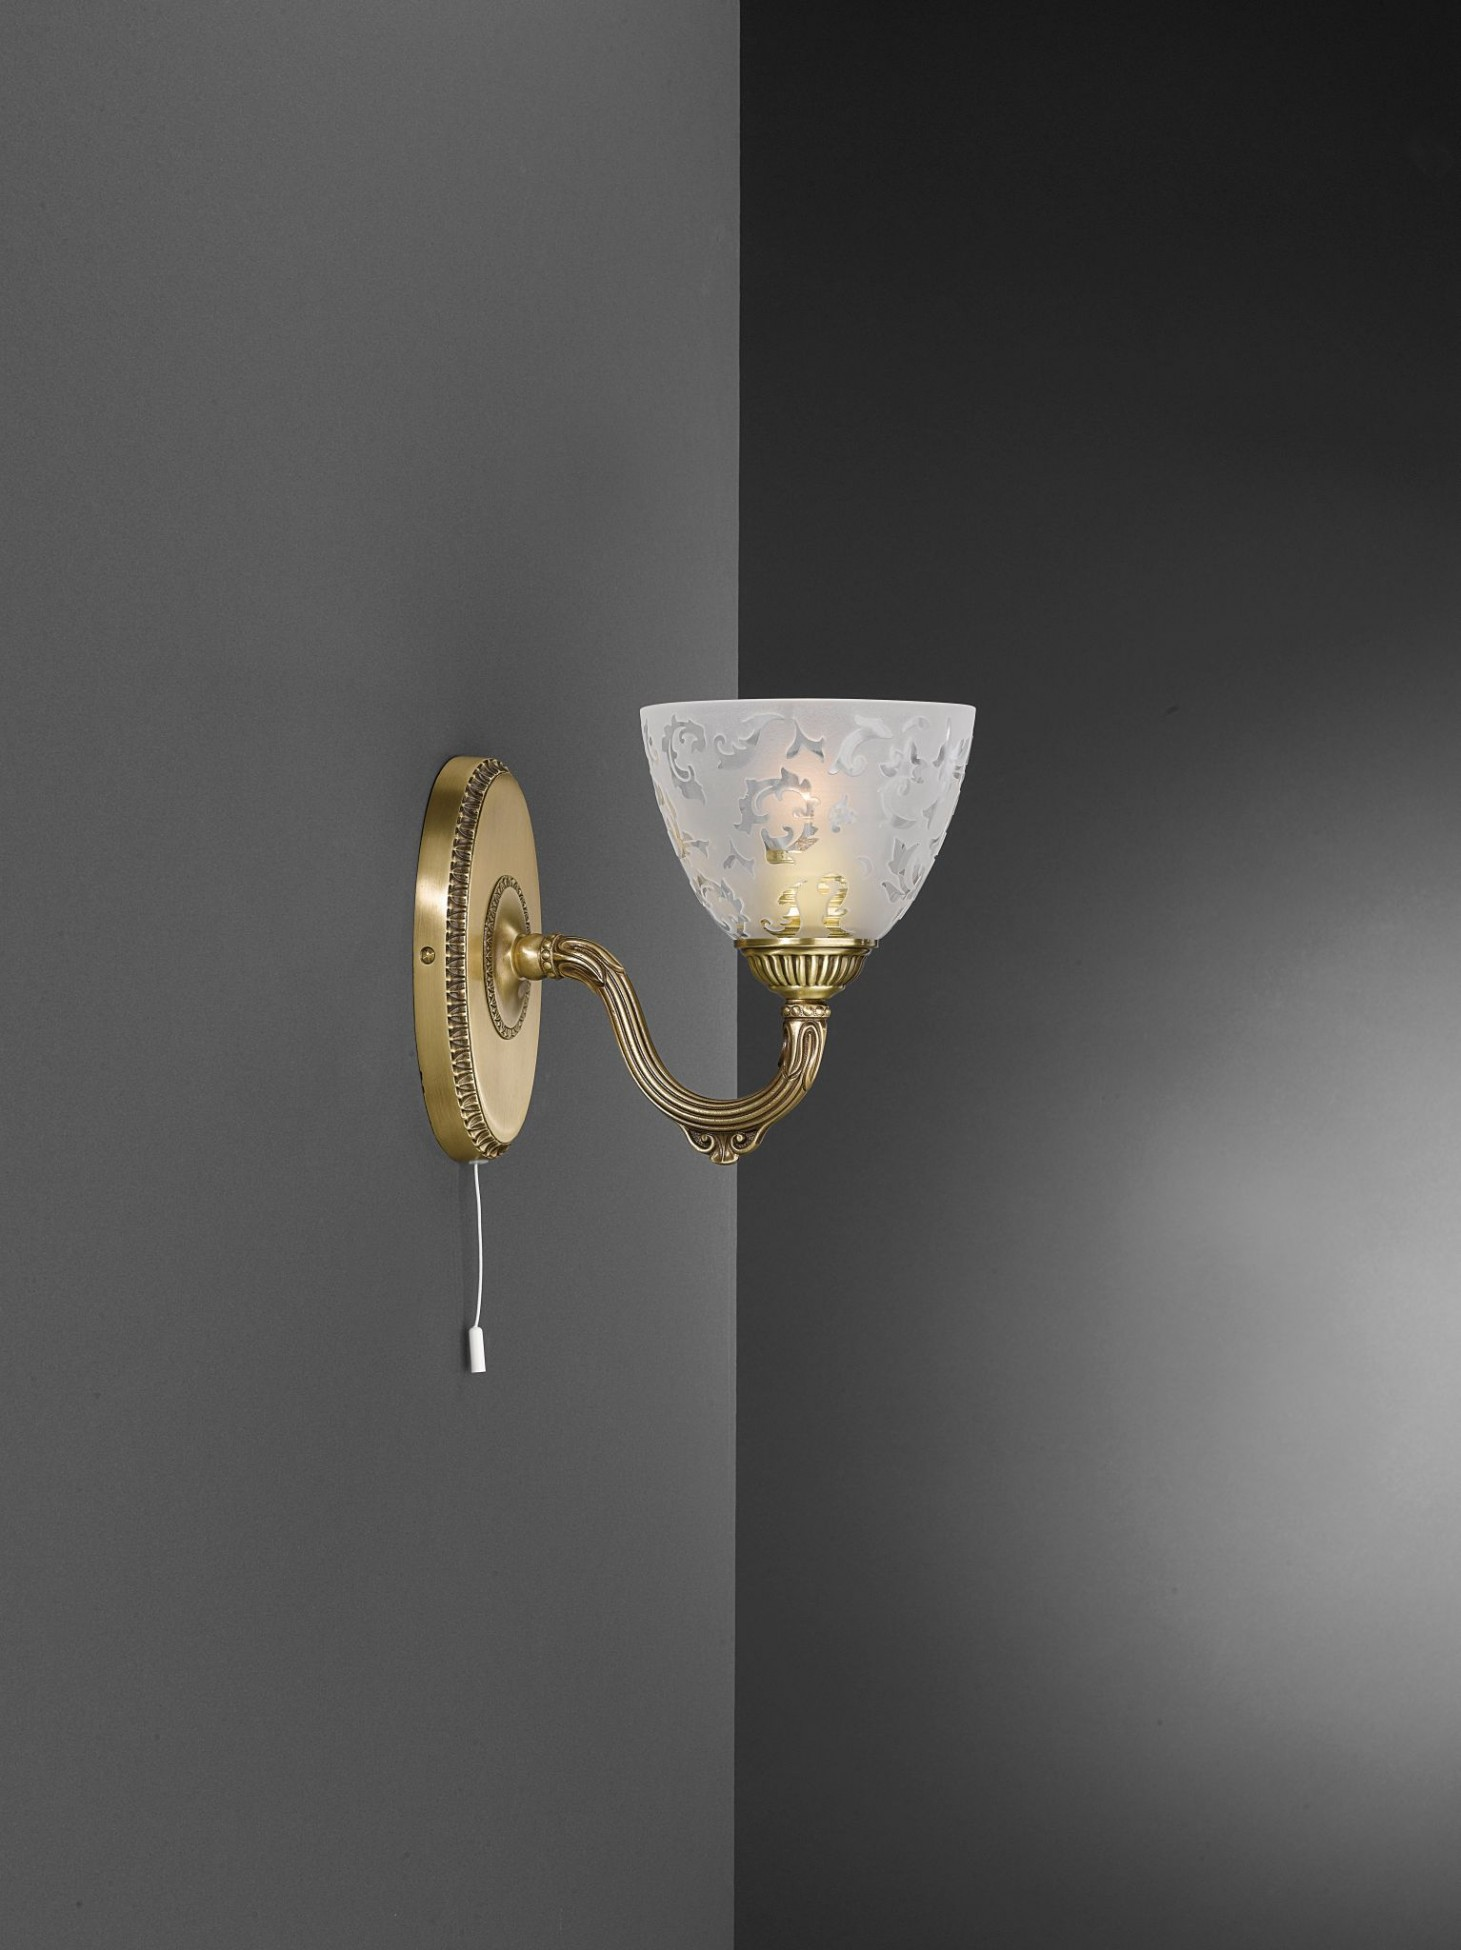 1 light brass wall sconce with frosted glass facing upward Reccagni Store